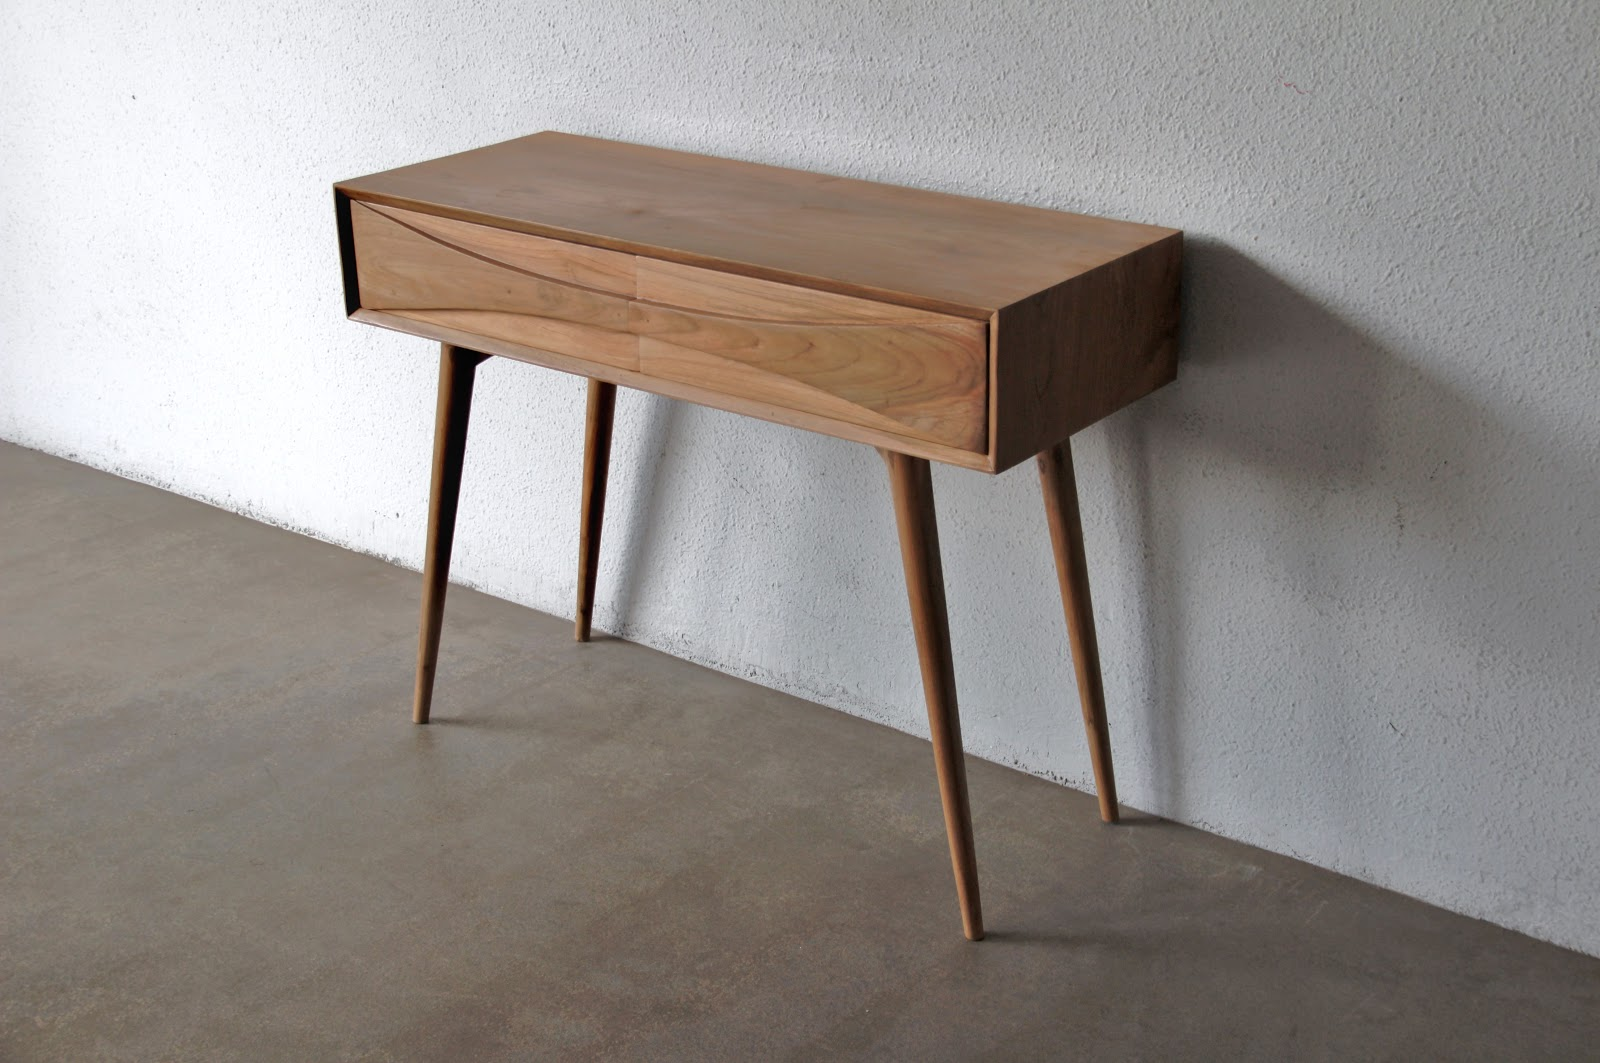 BUAT TESTING DOANG: Ashley Furniture Mid Century Modern